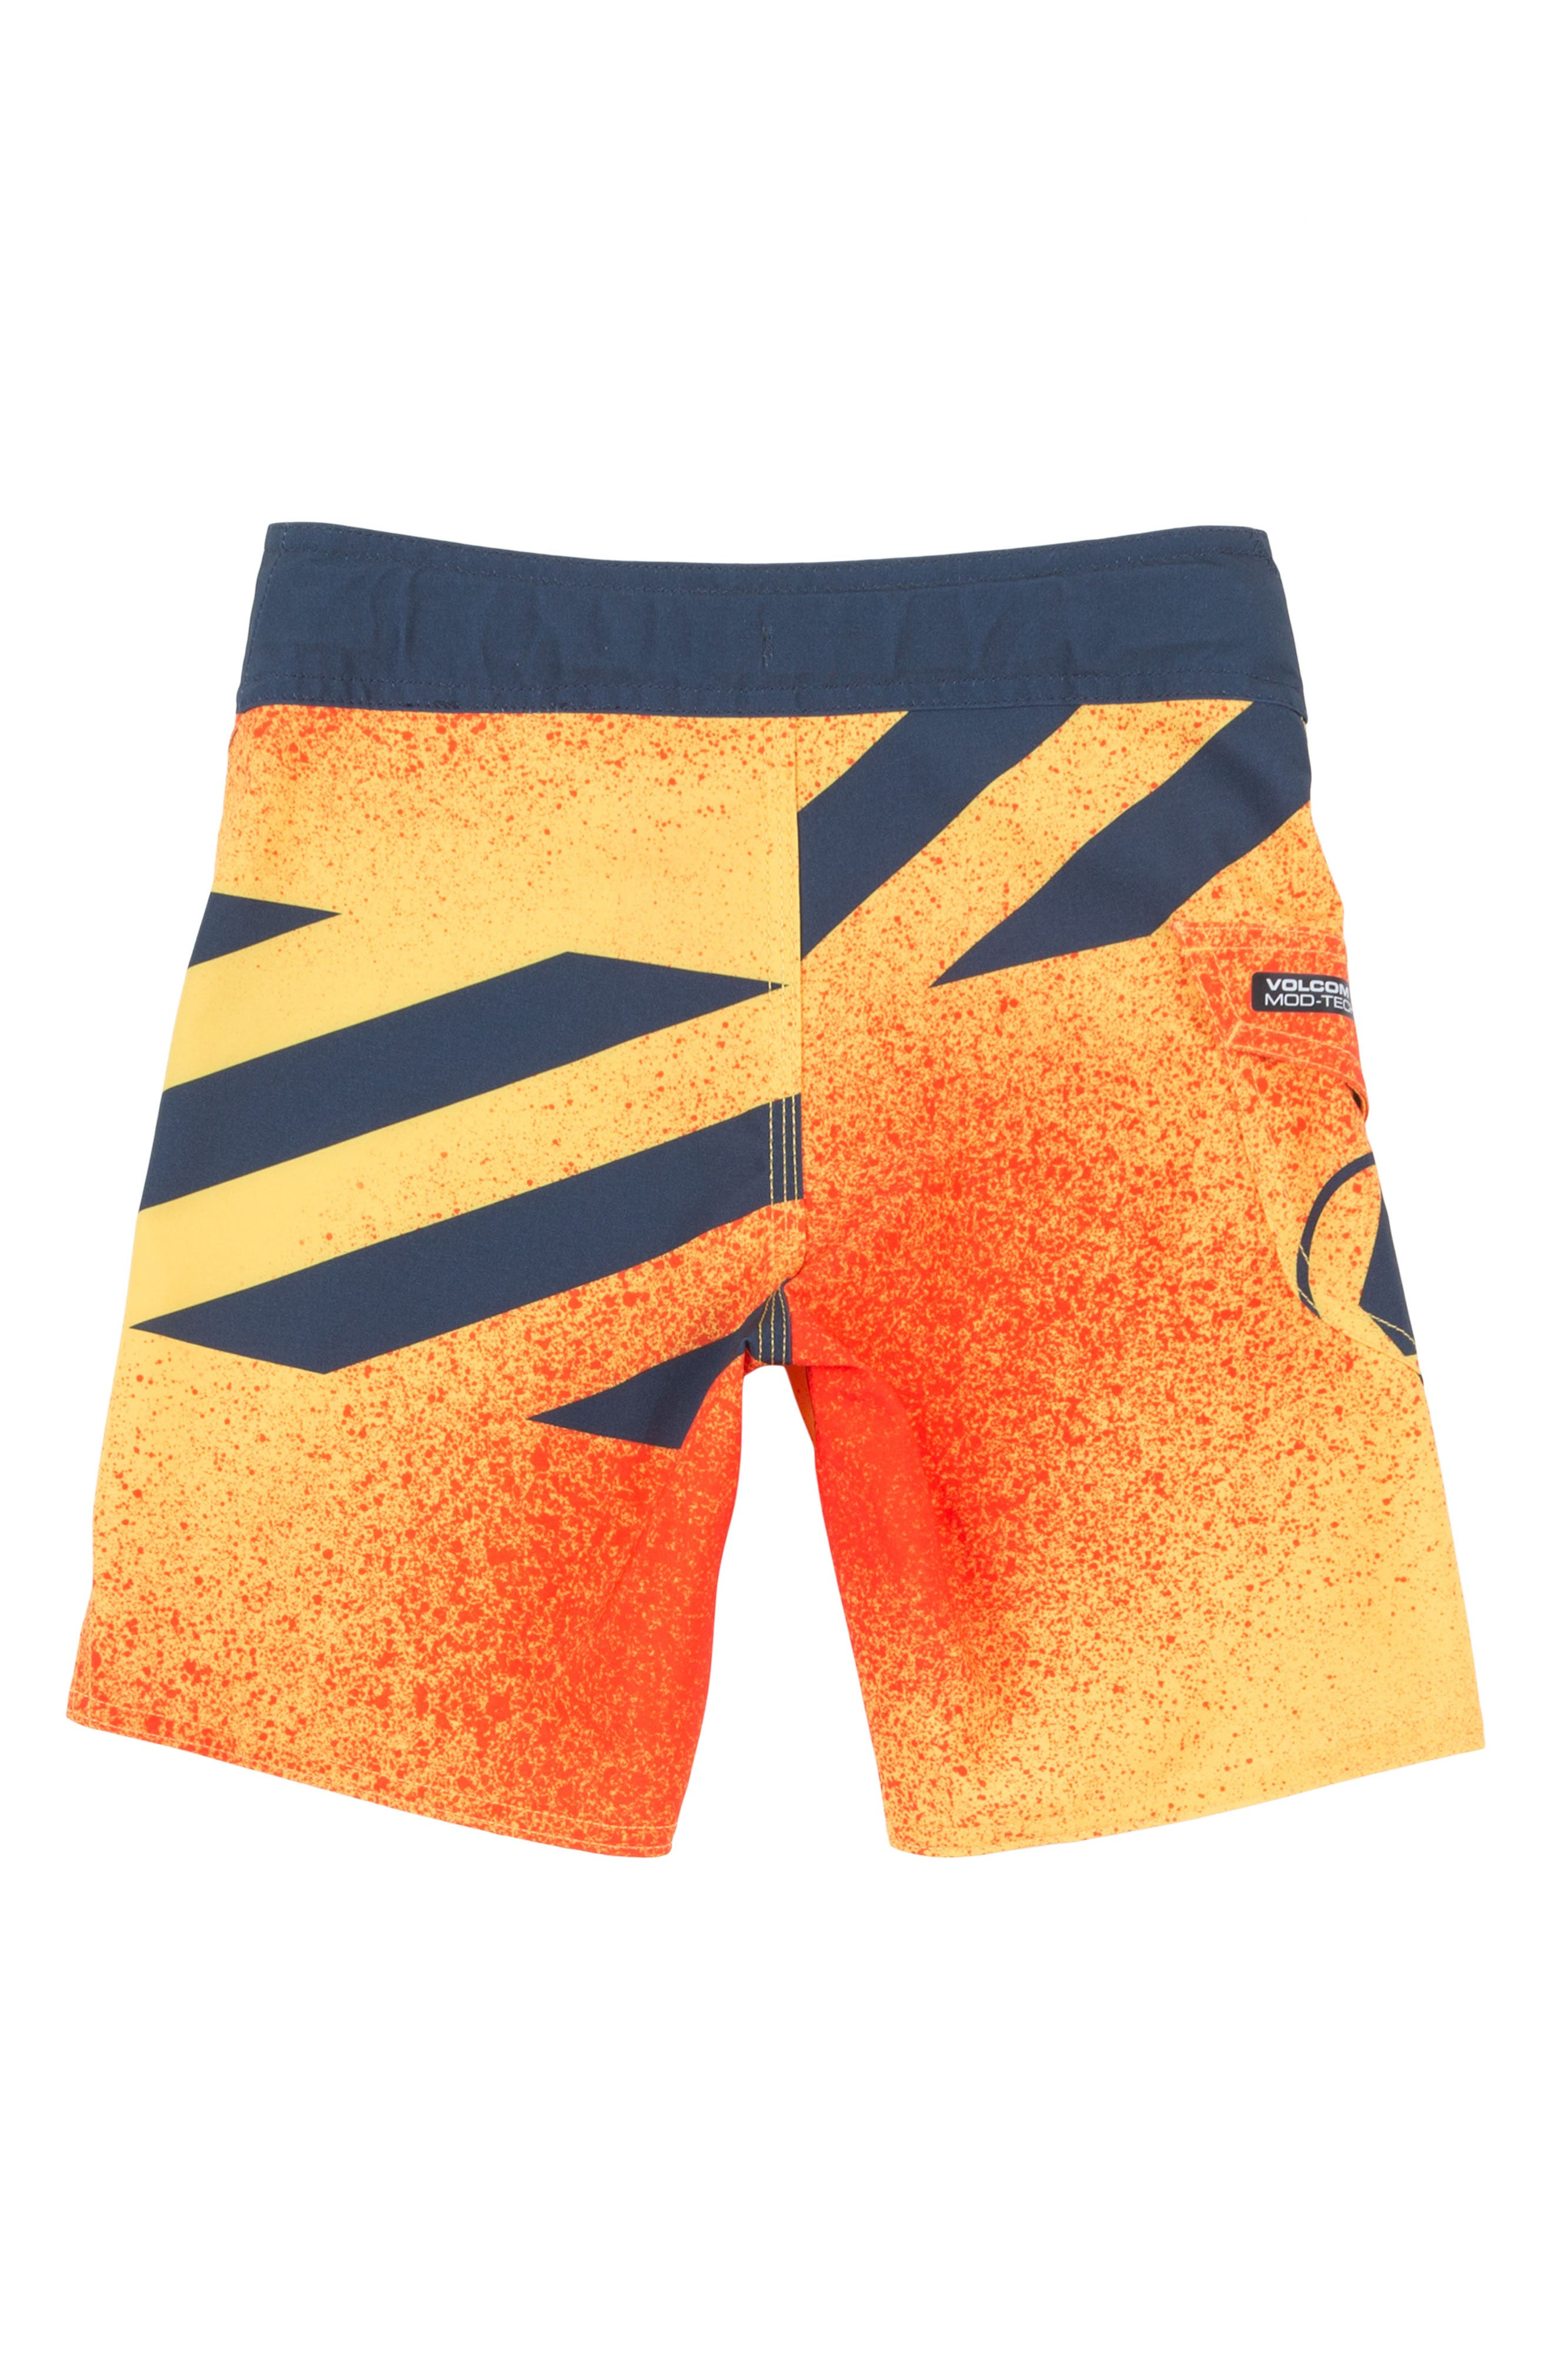 Logo Party Pack Mod Board Shorts,                             Alternate thumbnail 9, color,